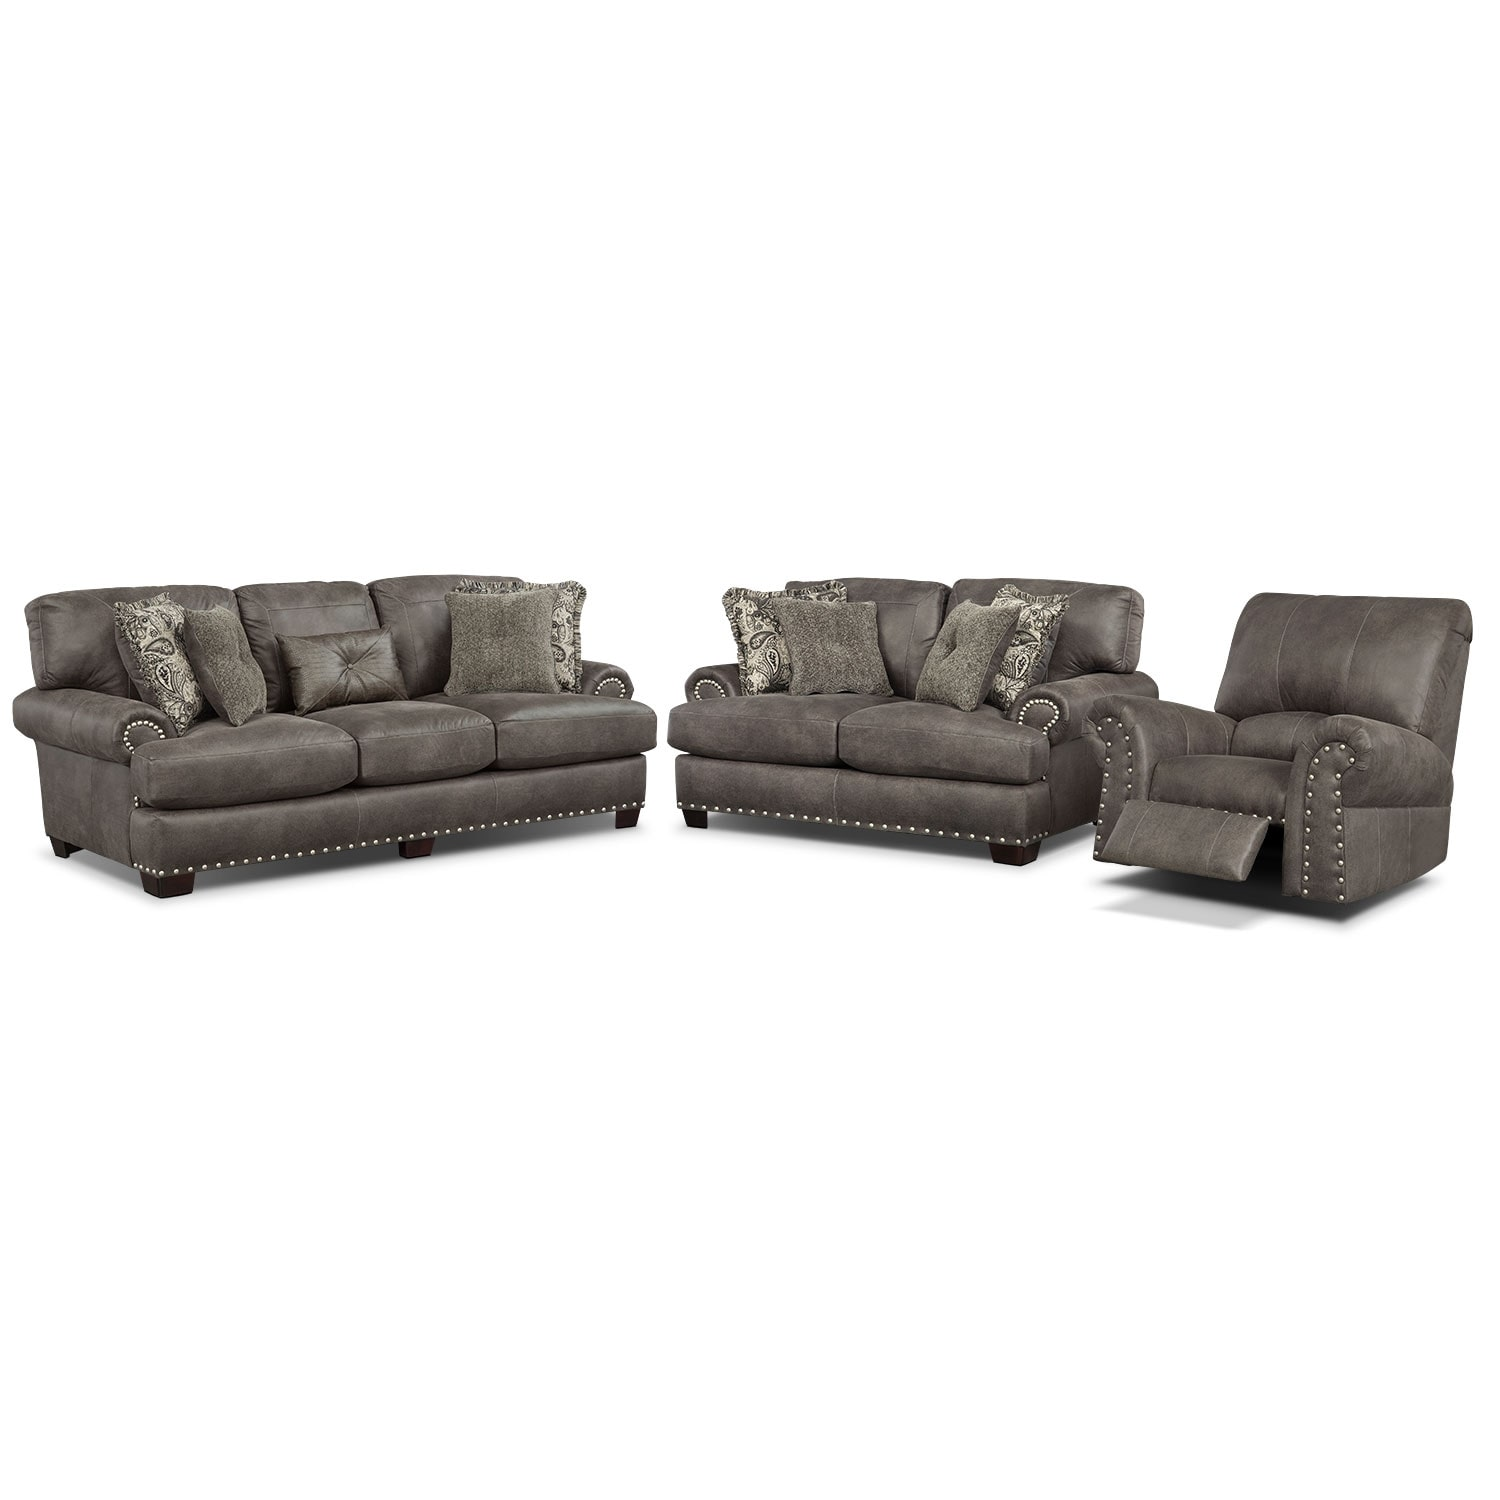 Living Room Furniture - Burlington Steel 3 Pc. Living Room